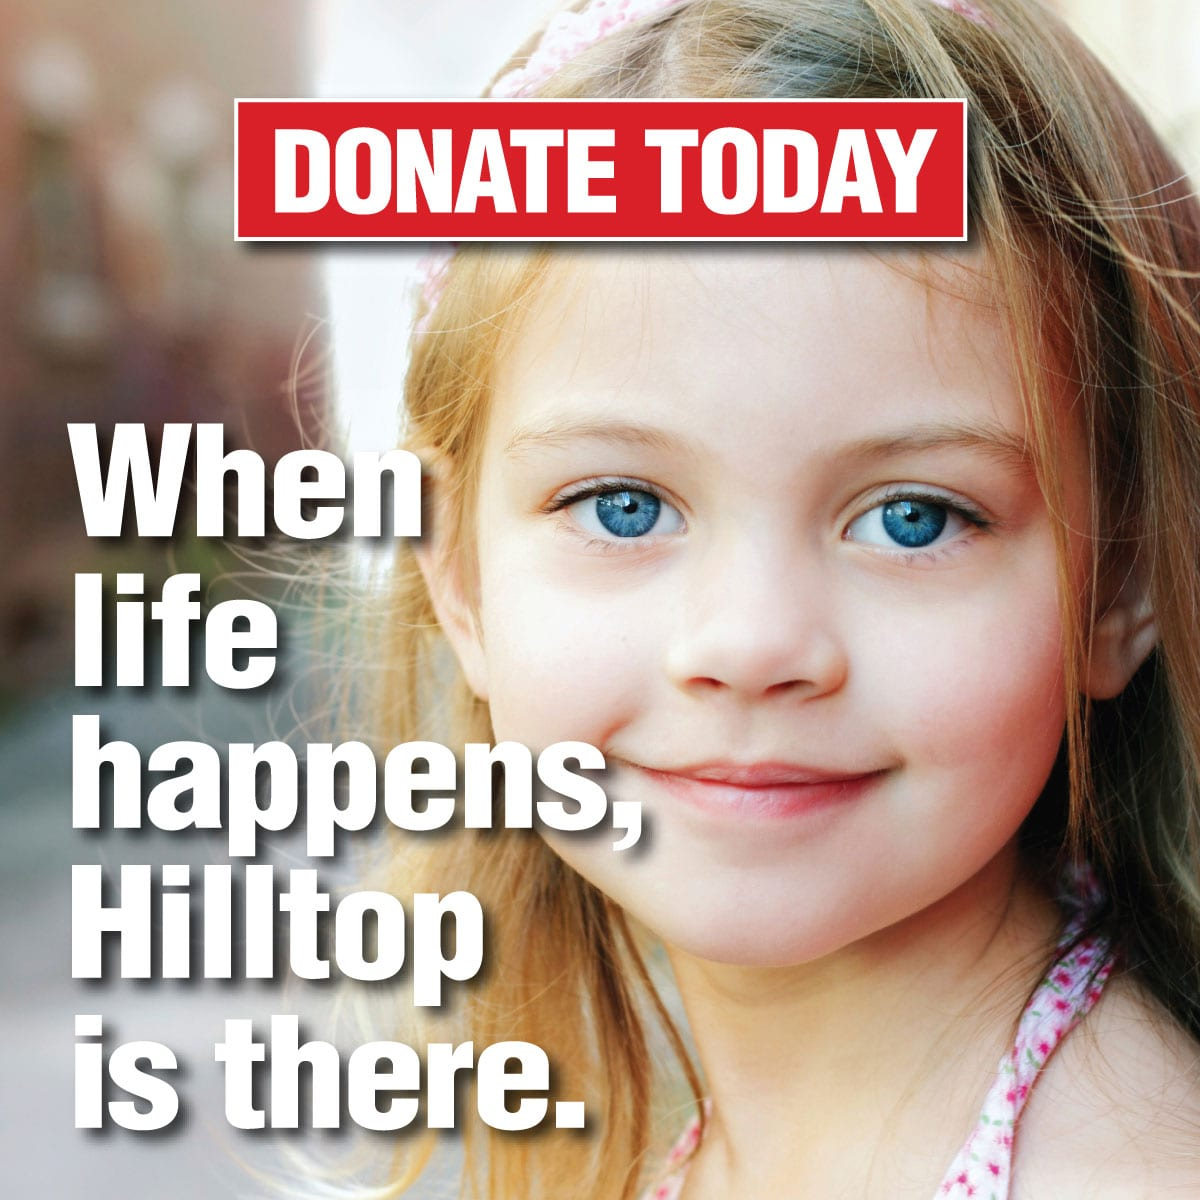 Make a Donation to Hilltop